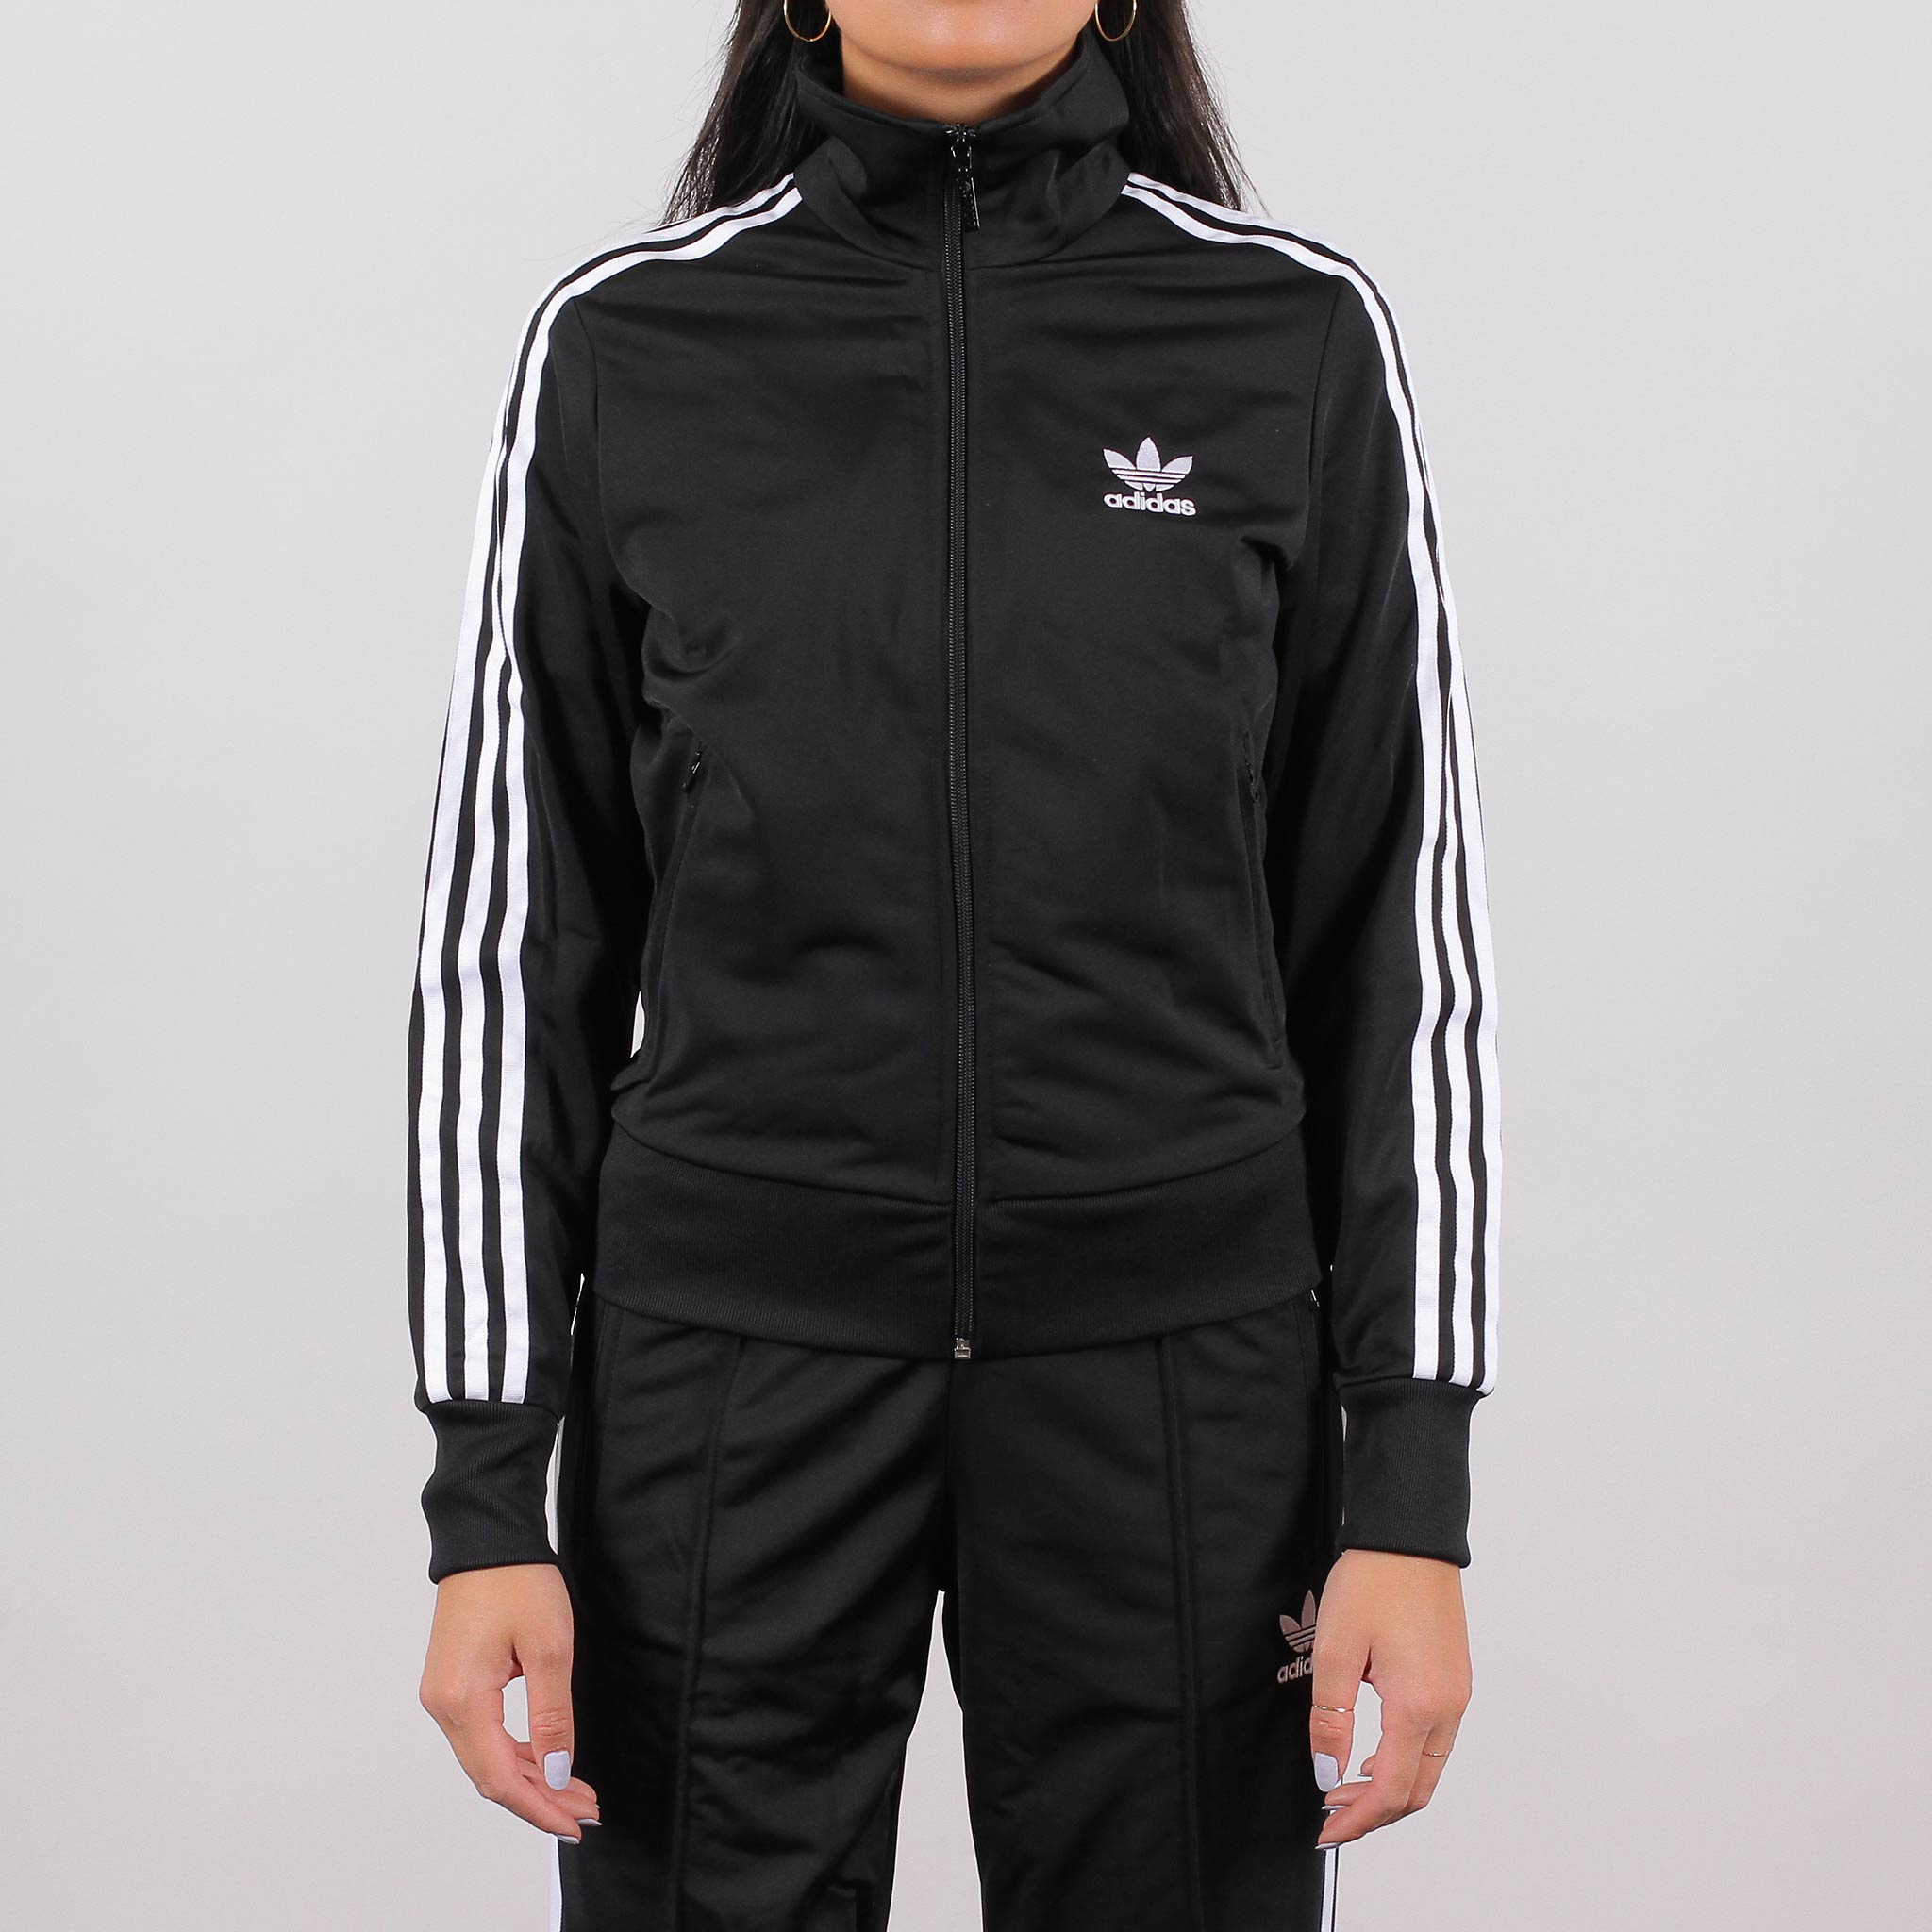 adidas fleece byxor